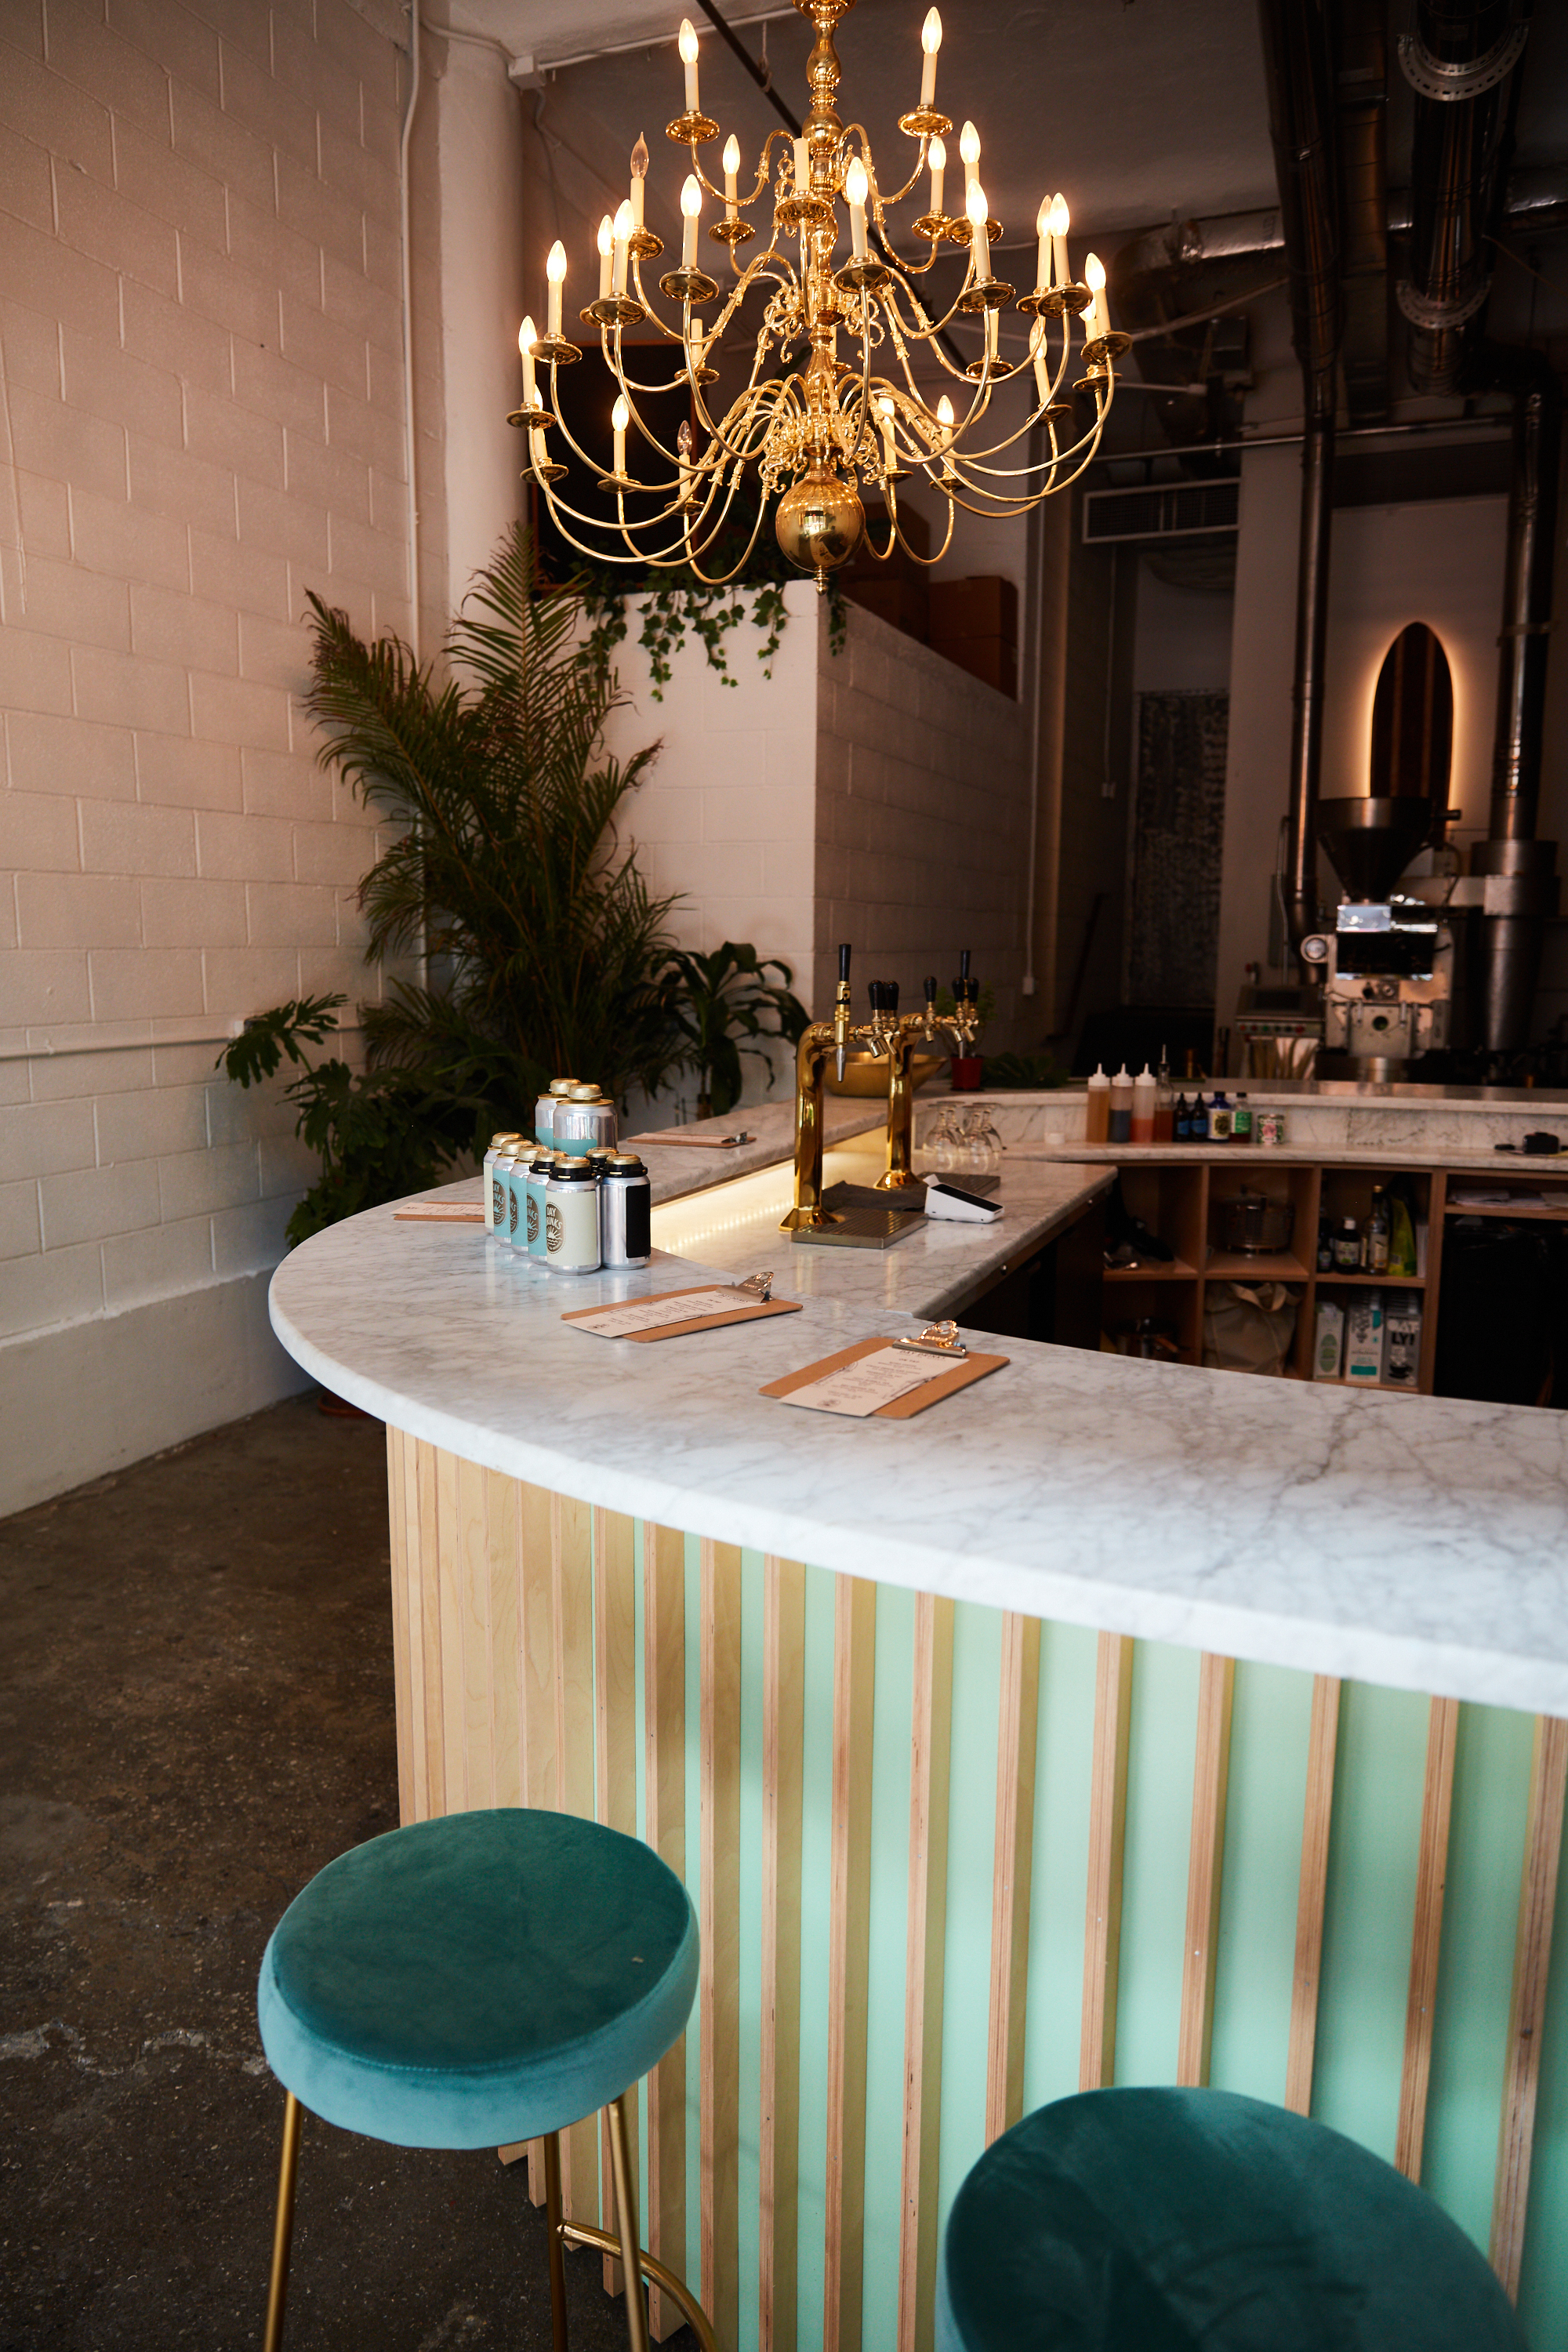 A cocktail-style coffee bar just opened at Chelsea Market